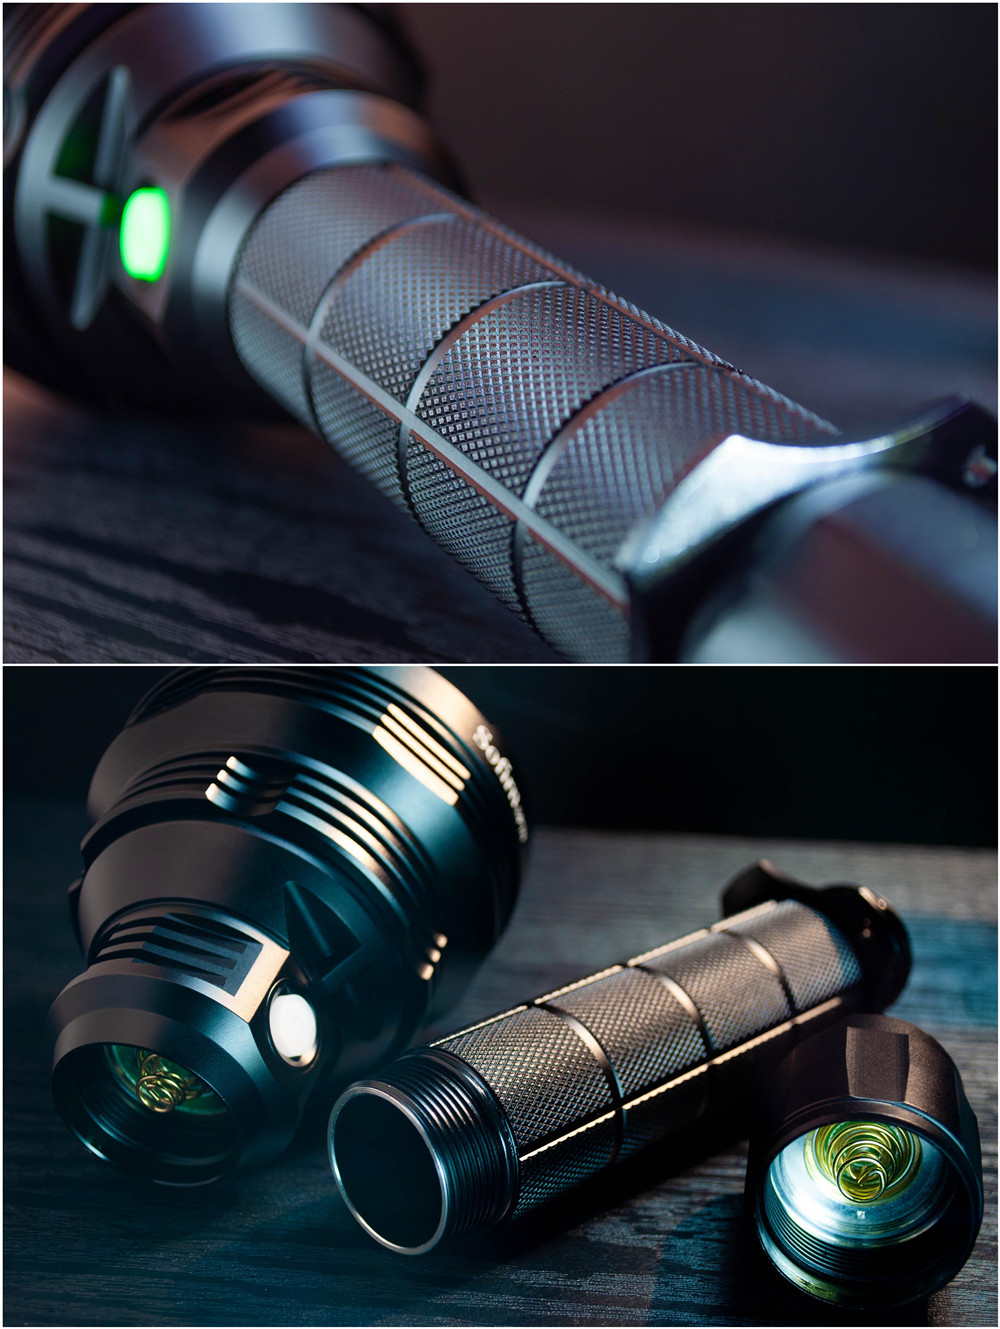 Sofirn SP70 Ultra bright 26650 LED Flashlight High Power 5500LM Tactical 18650 Light Cree XHP70.2 With ATR 2 Groups Ramping 2